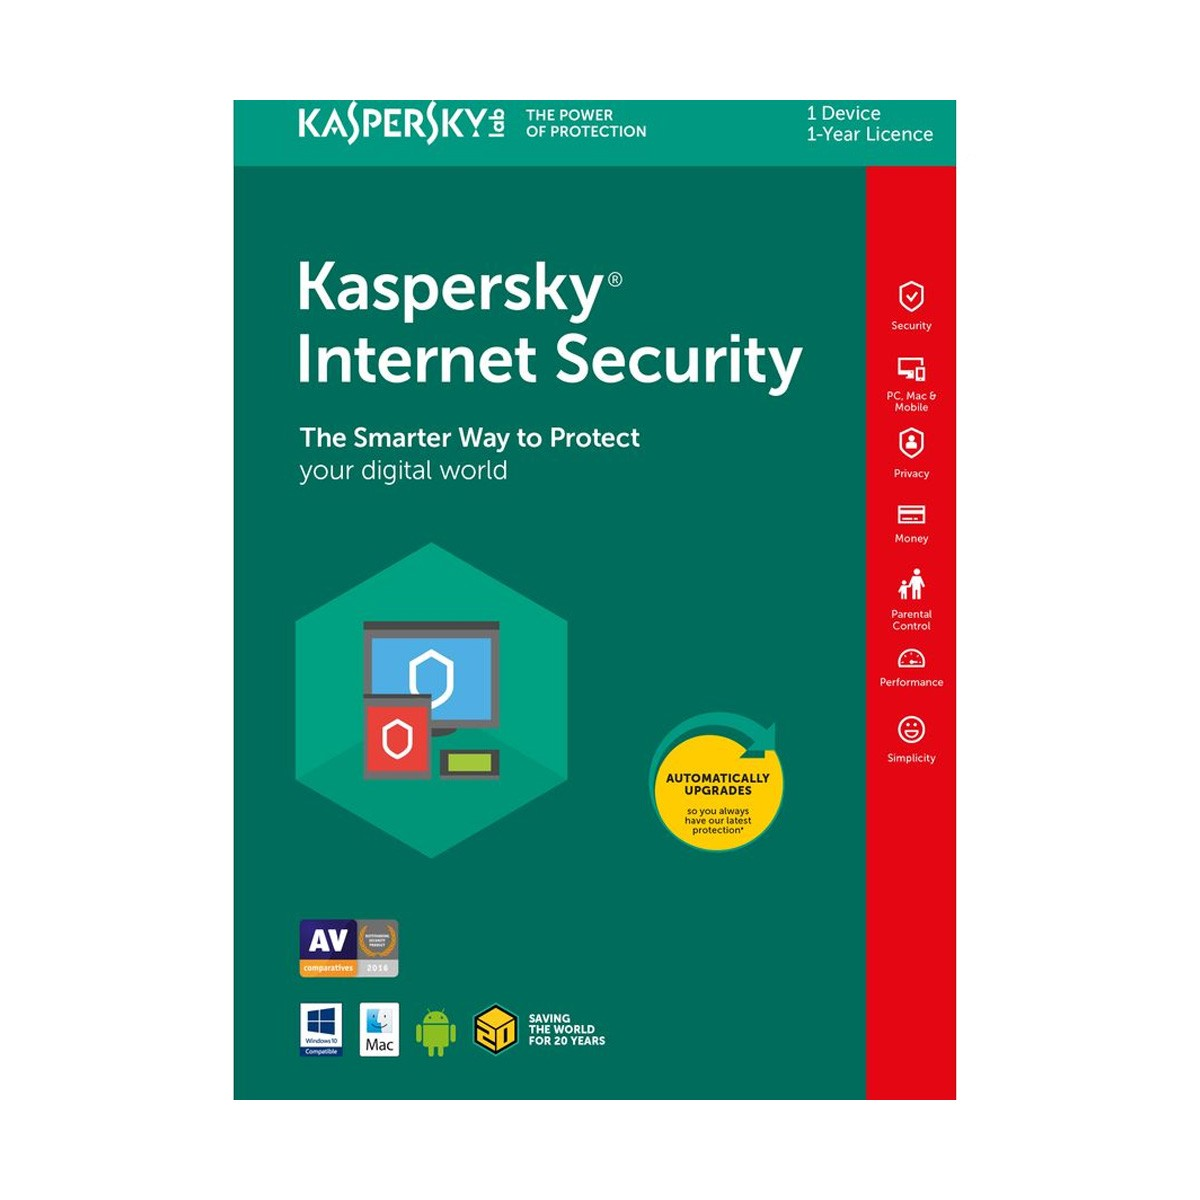 kaspersky free activation key 2019